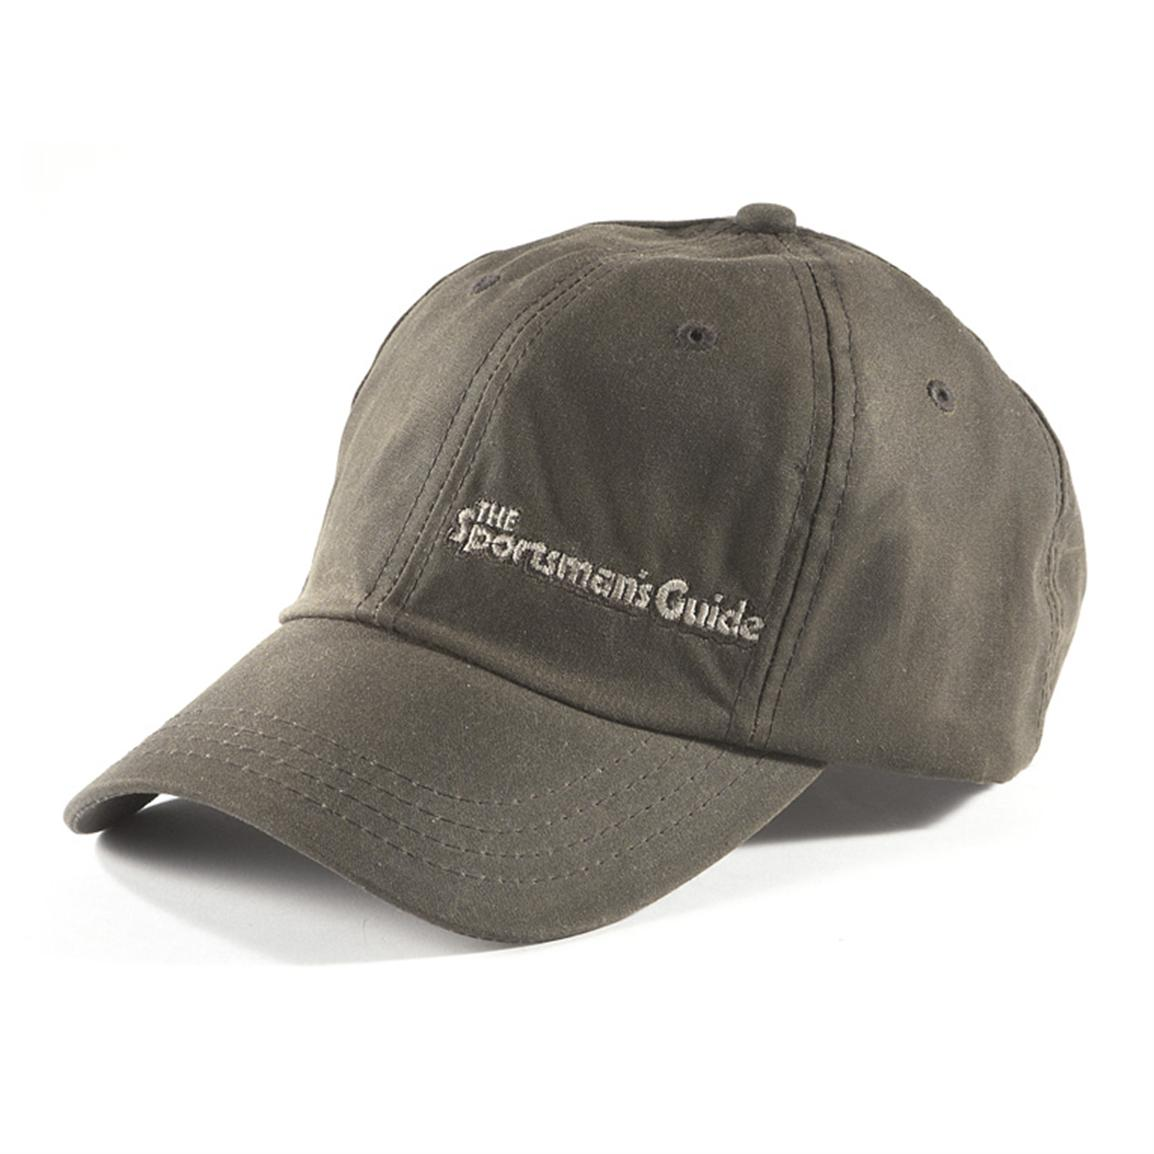 The Sportsman's Guide® Logo Waxed Cotton Baseball Cap, Brown